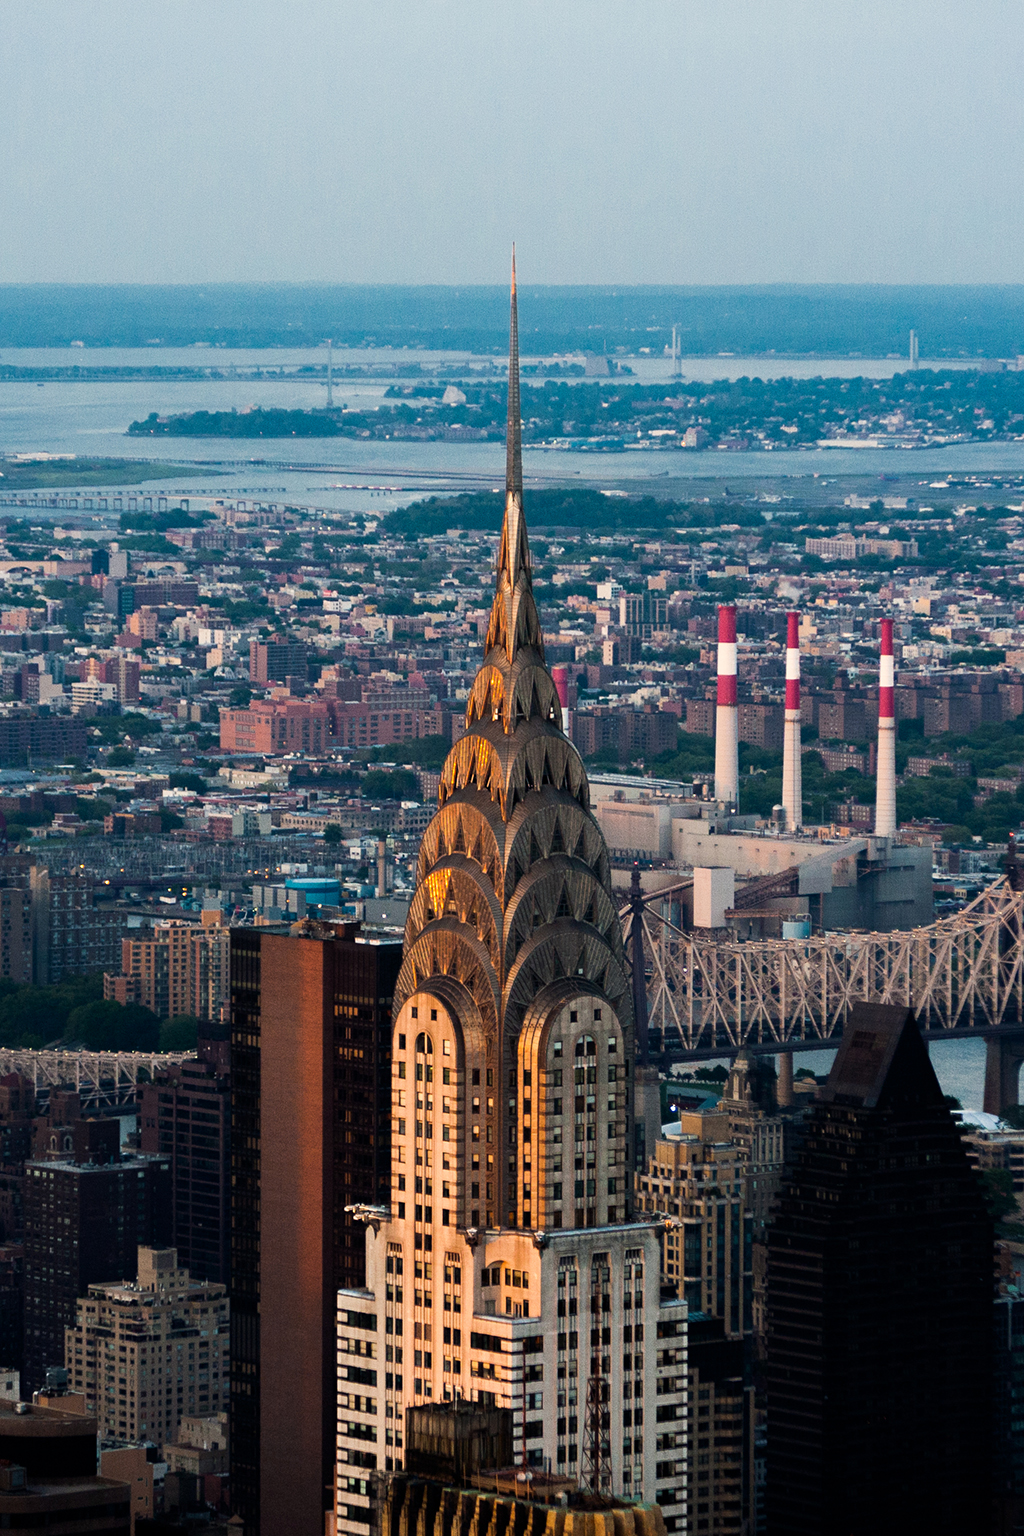 Chrysler Building at sunset